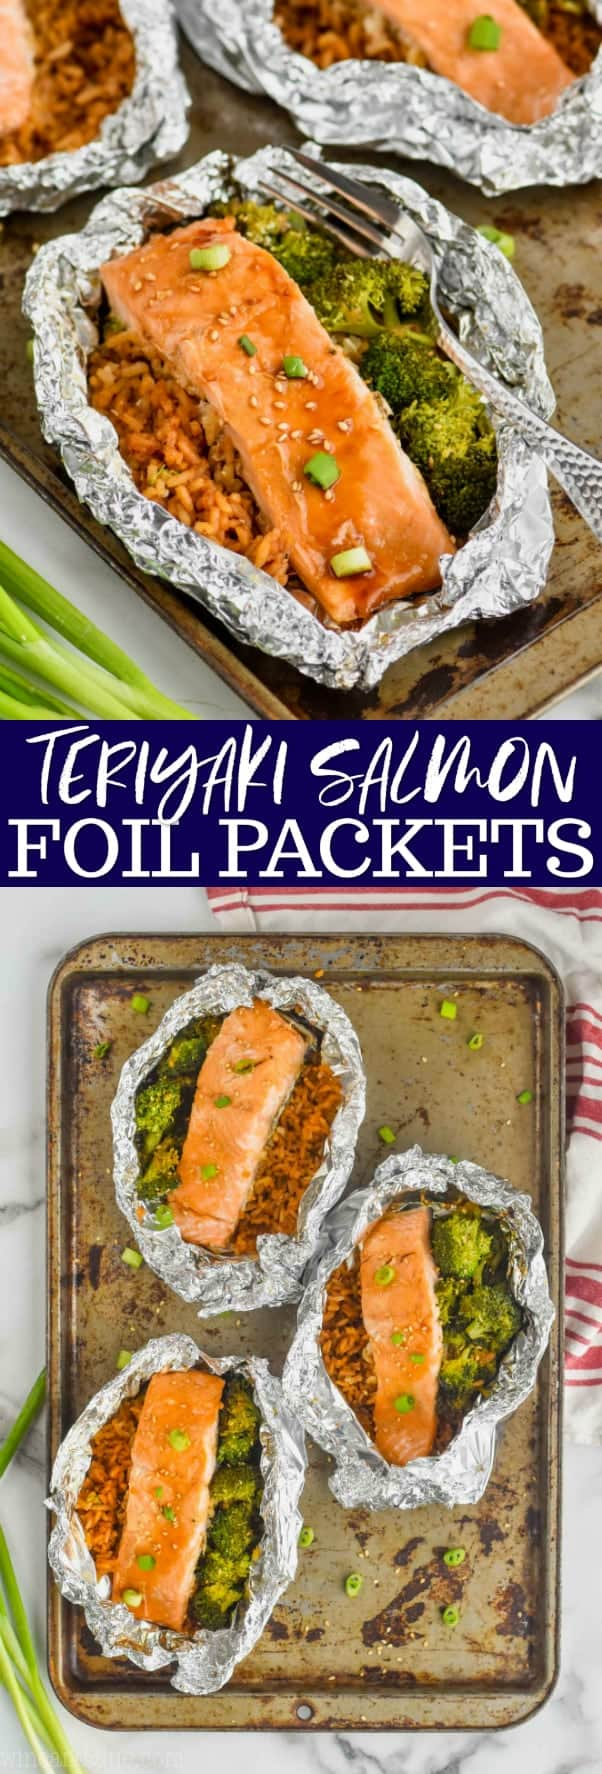 collage of teriyaki salmon foil packets recipe picture